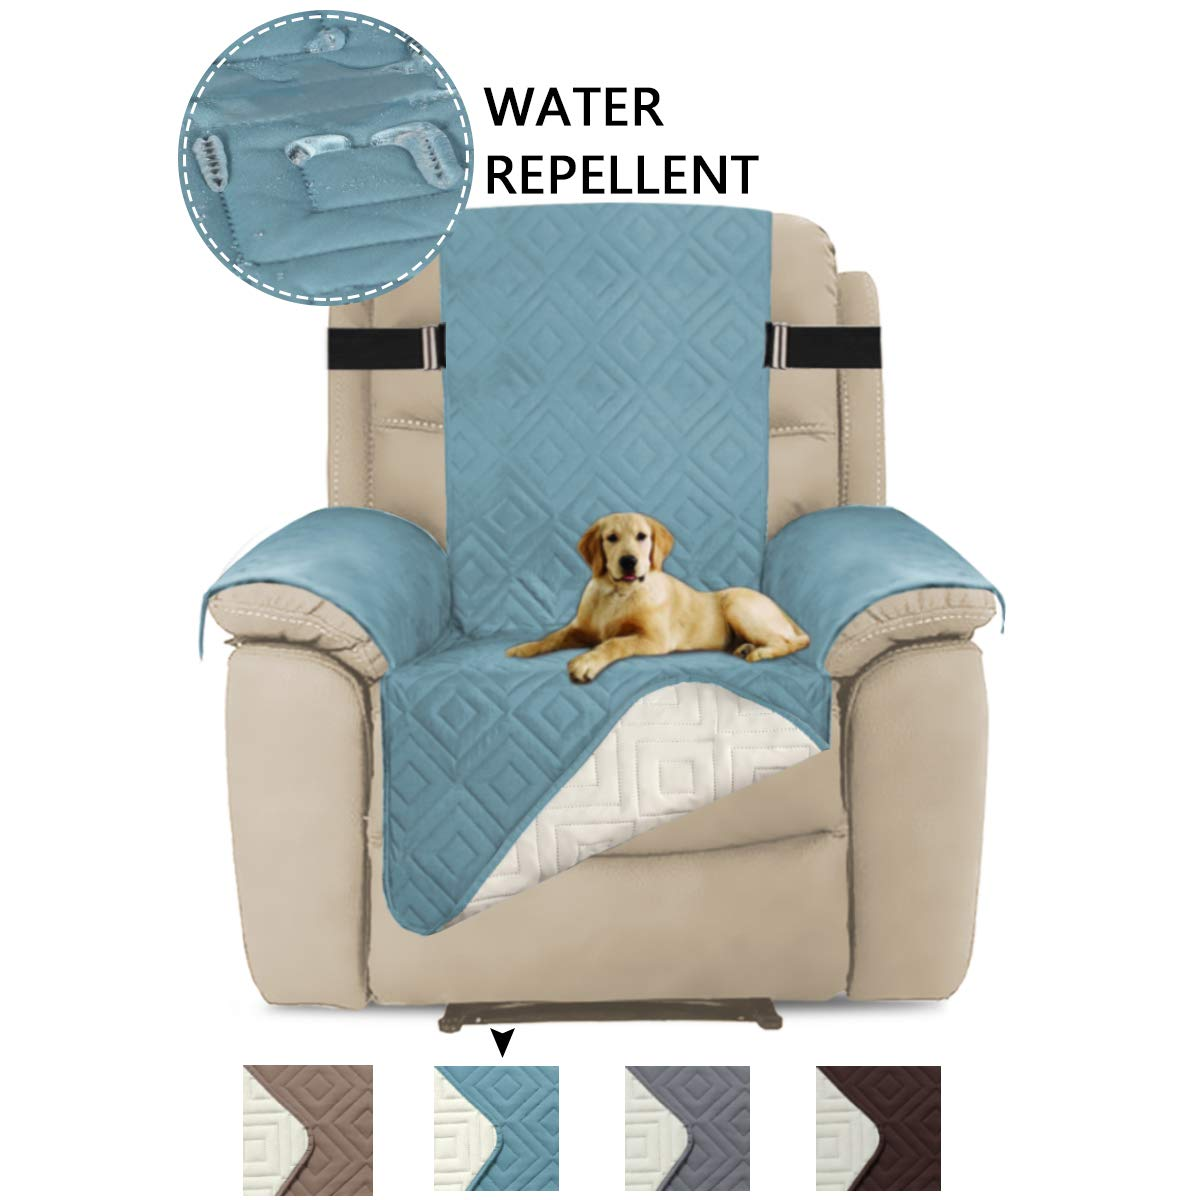 Sofa, 75 x 110 Turquoize Quilted Microfiber Pets Sofa Protector Reversible Furniture Protector Cover with Elastic Straps 75 x 110